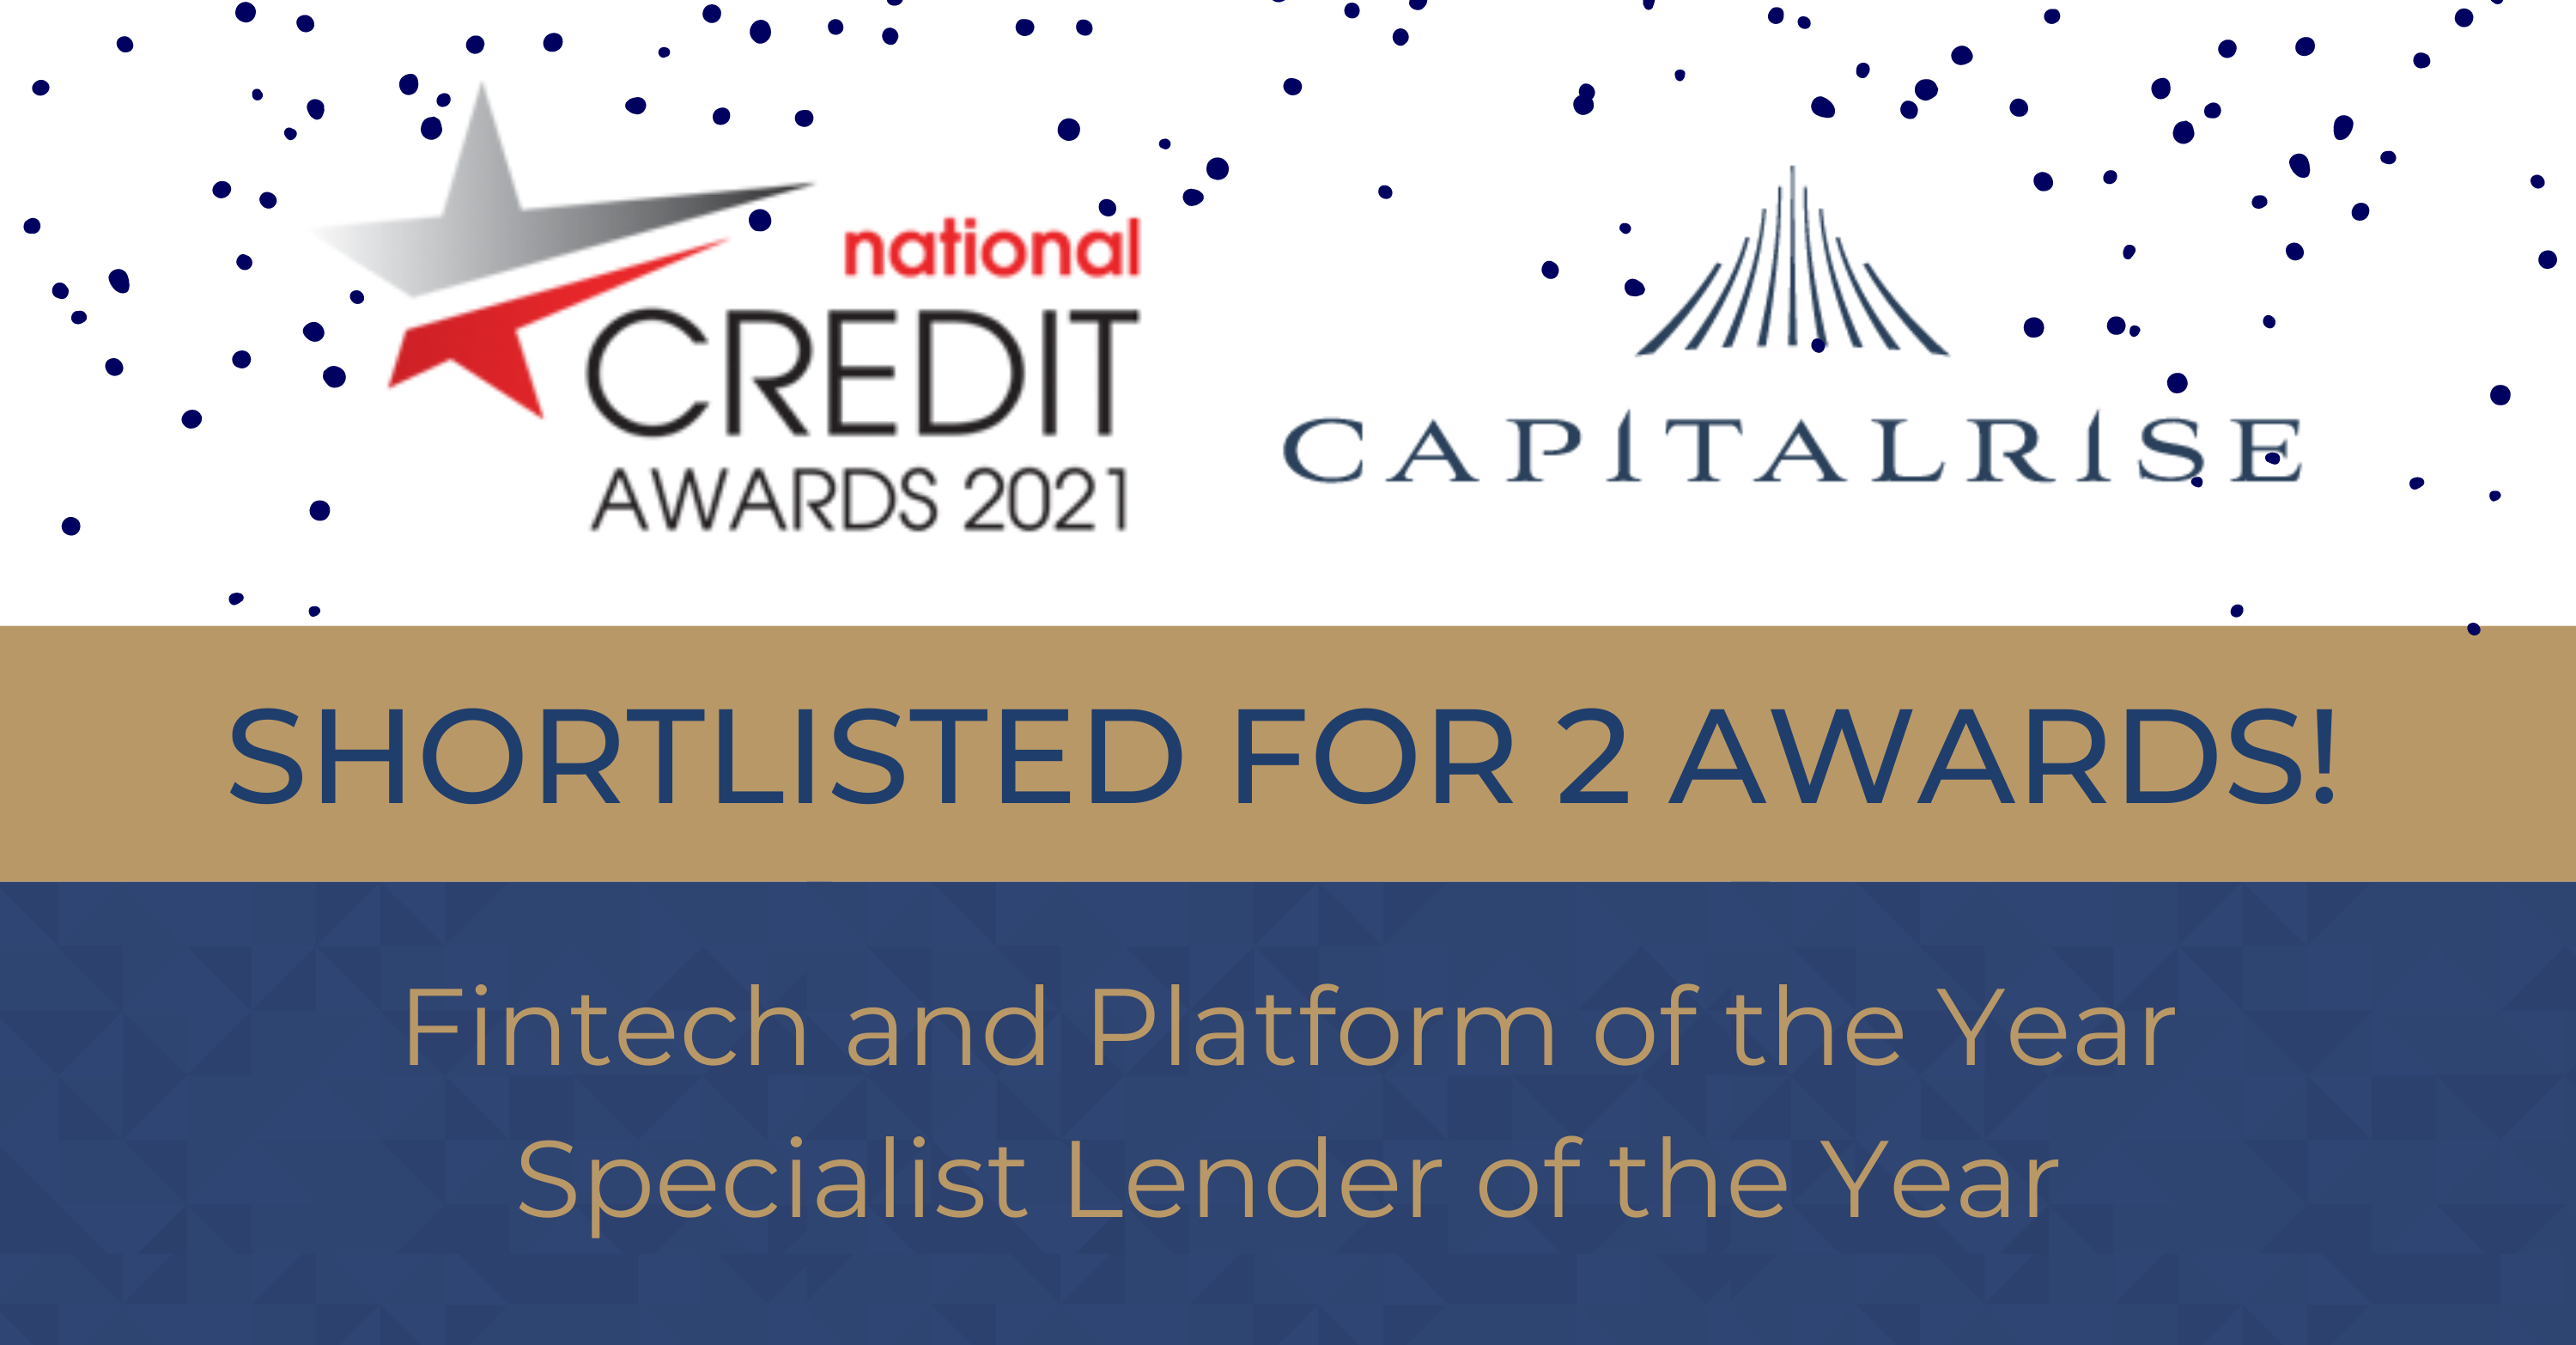 CapitalRise shortlisted in 2 categories at National Credit Awards 2021